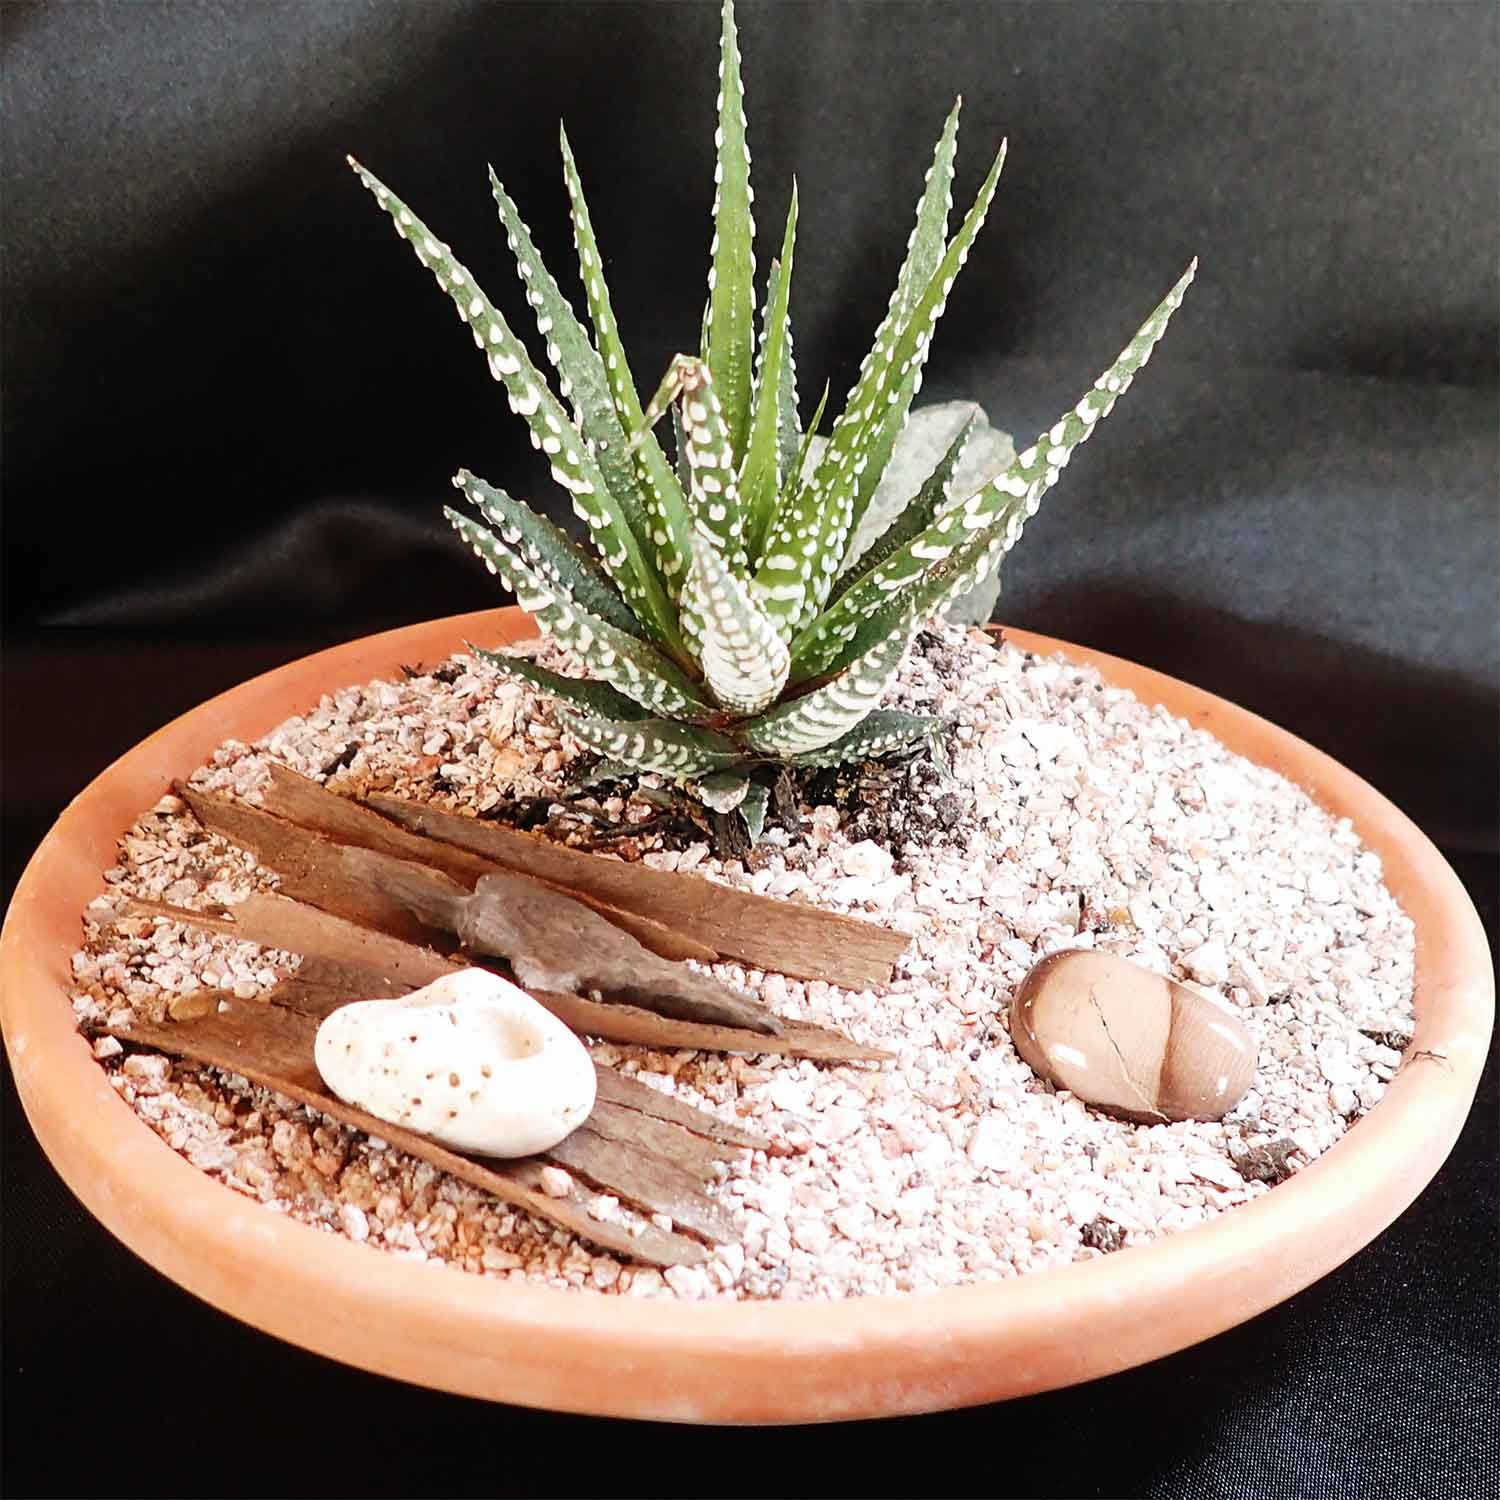 shallow dish with succulent plant, bark, grit and pebbles